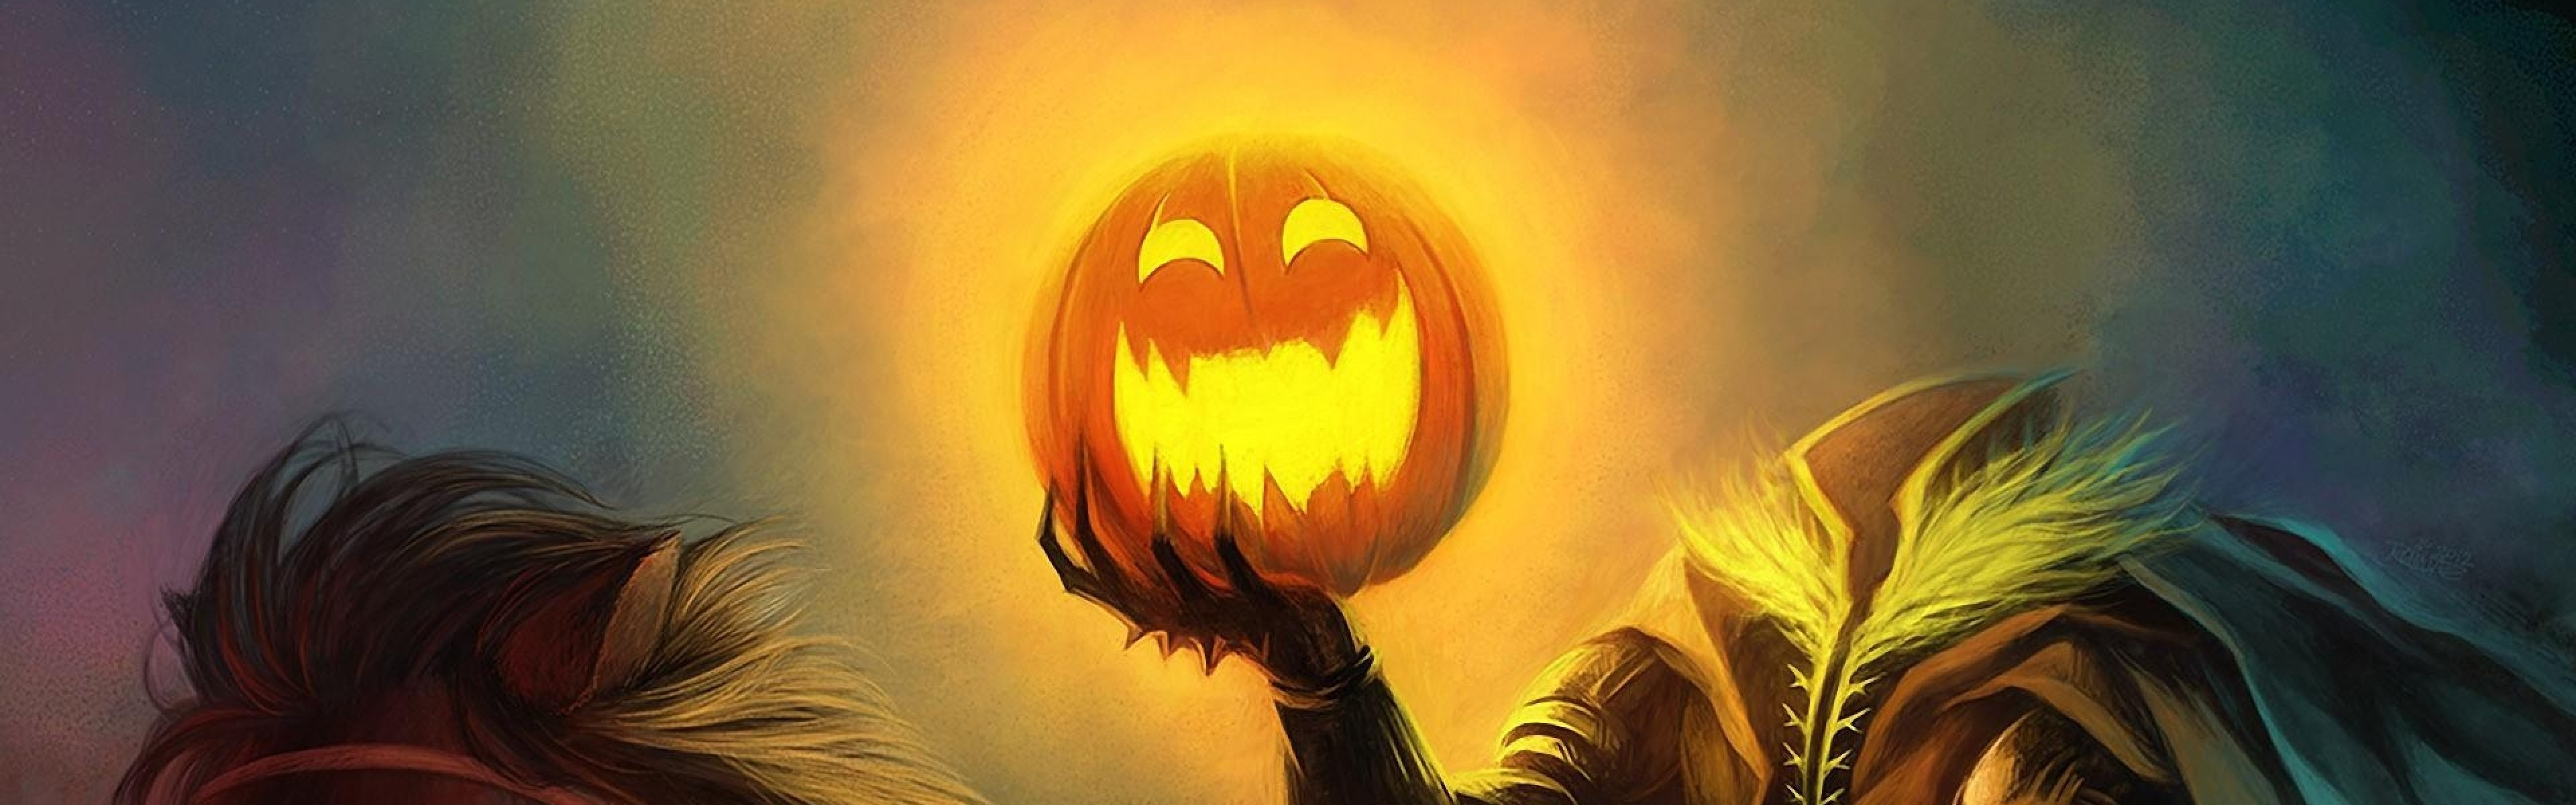 3840x1200  Wallpaper halloween, holiday, headless horseman, pumpkin, horse